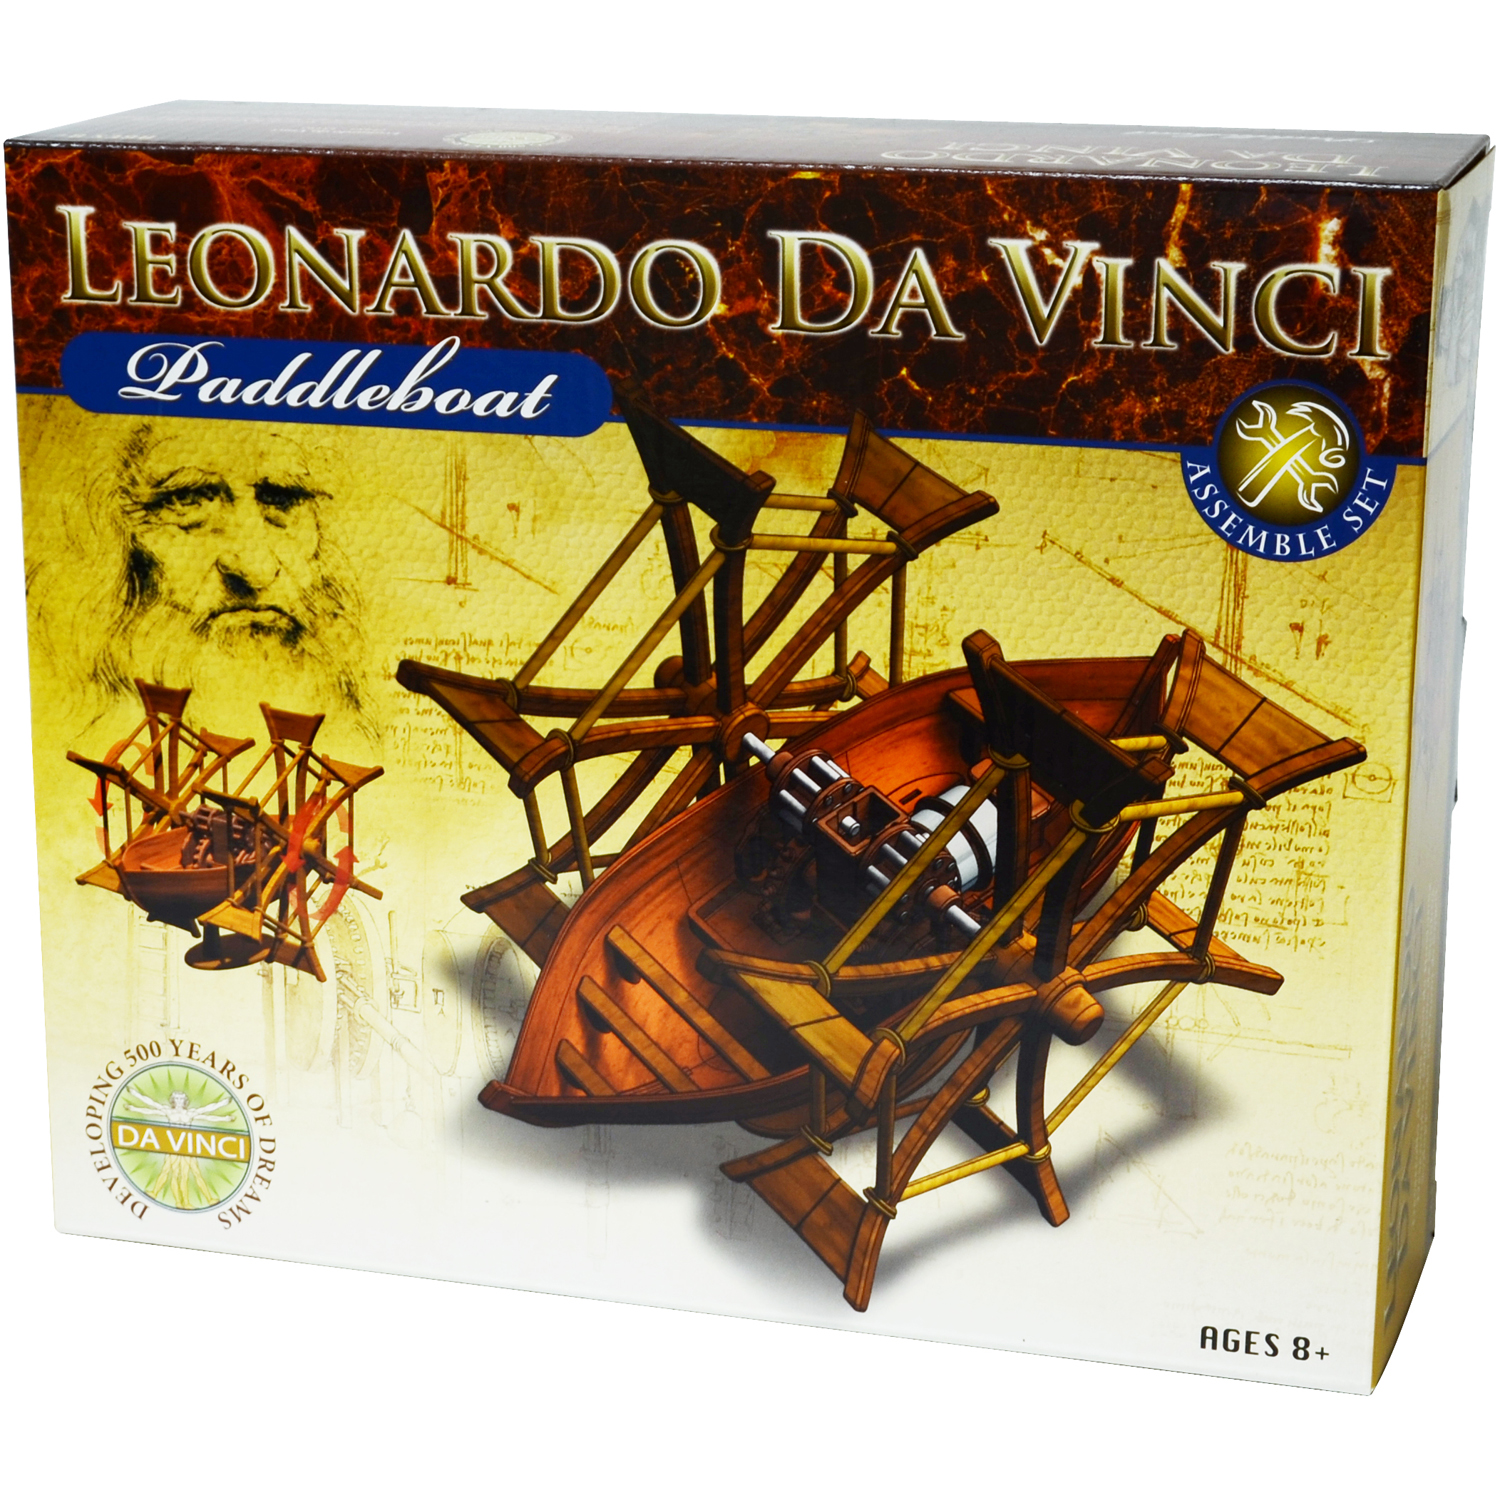 DaVinci Paddleboat Kit